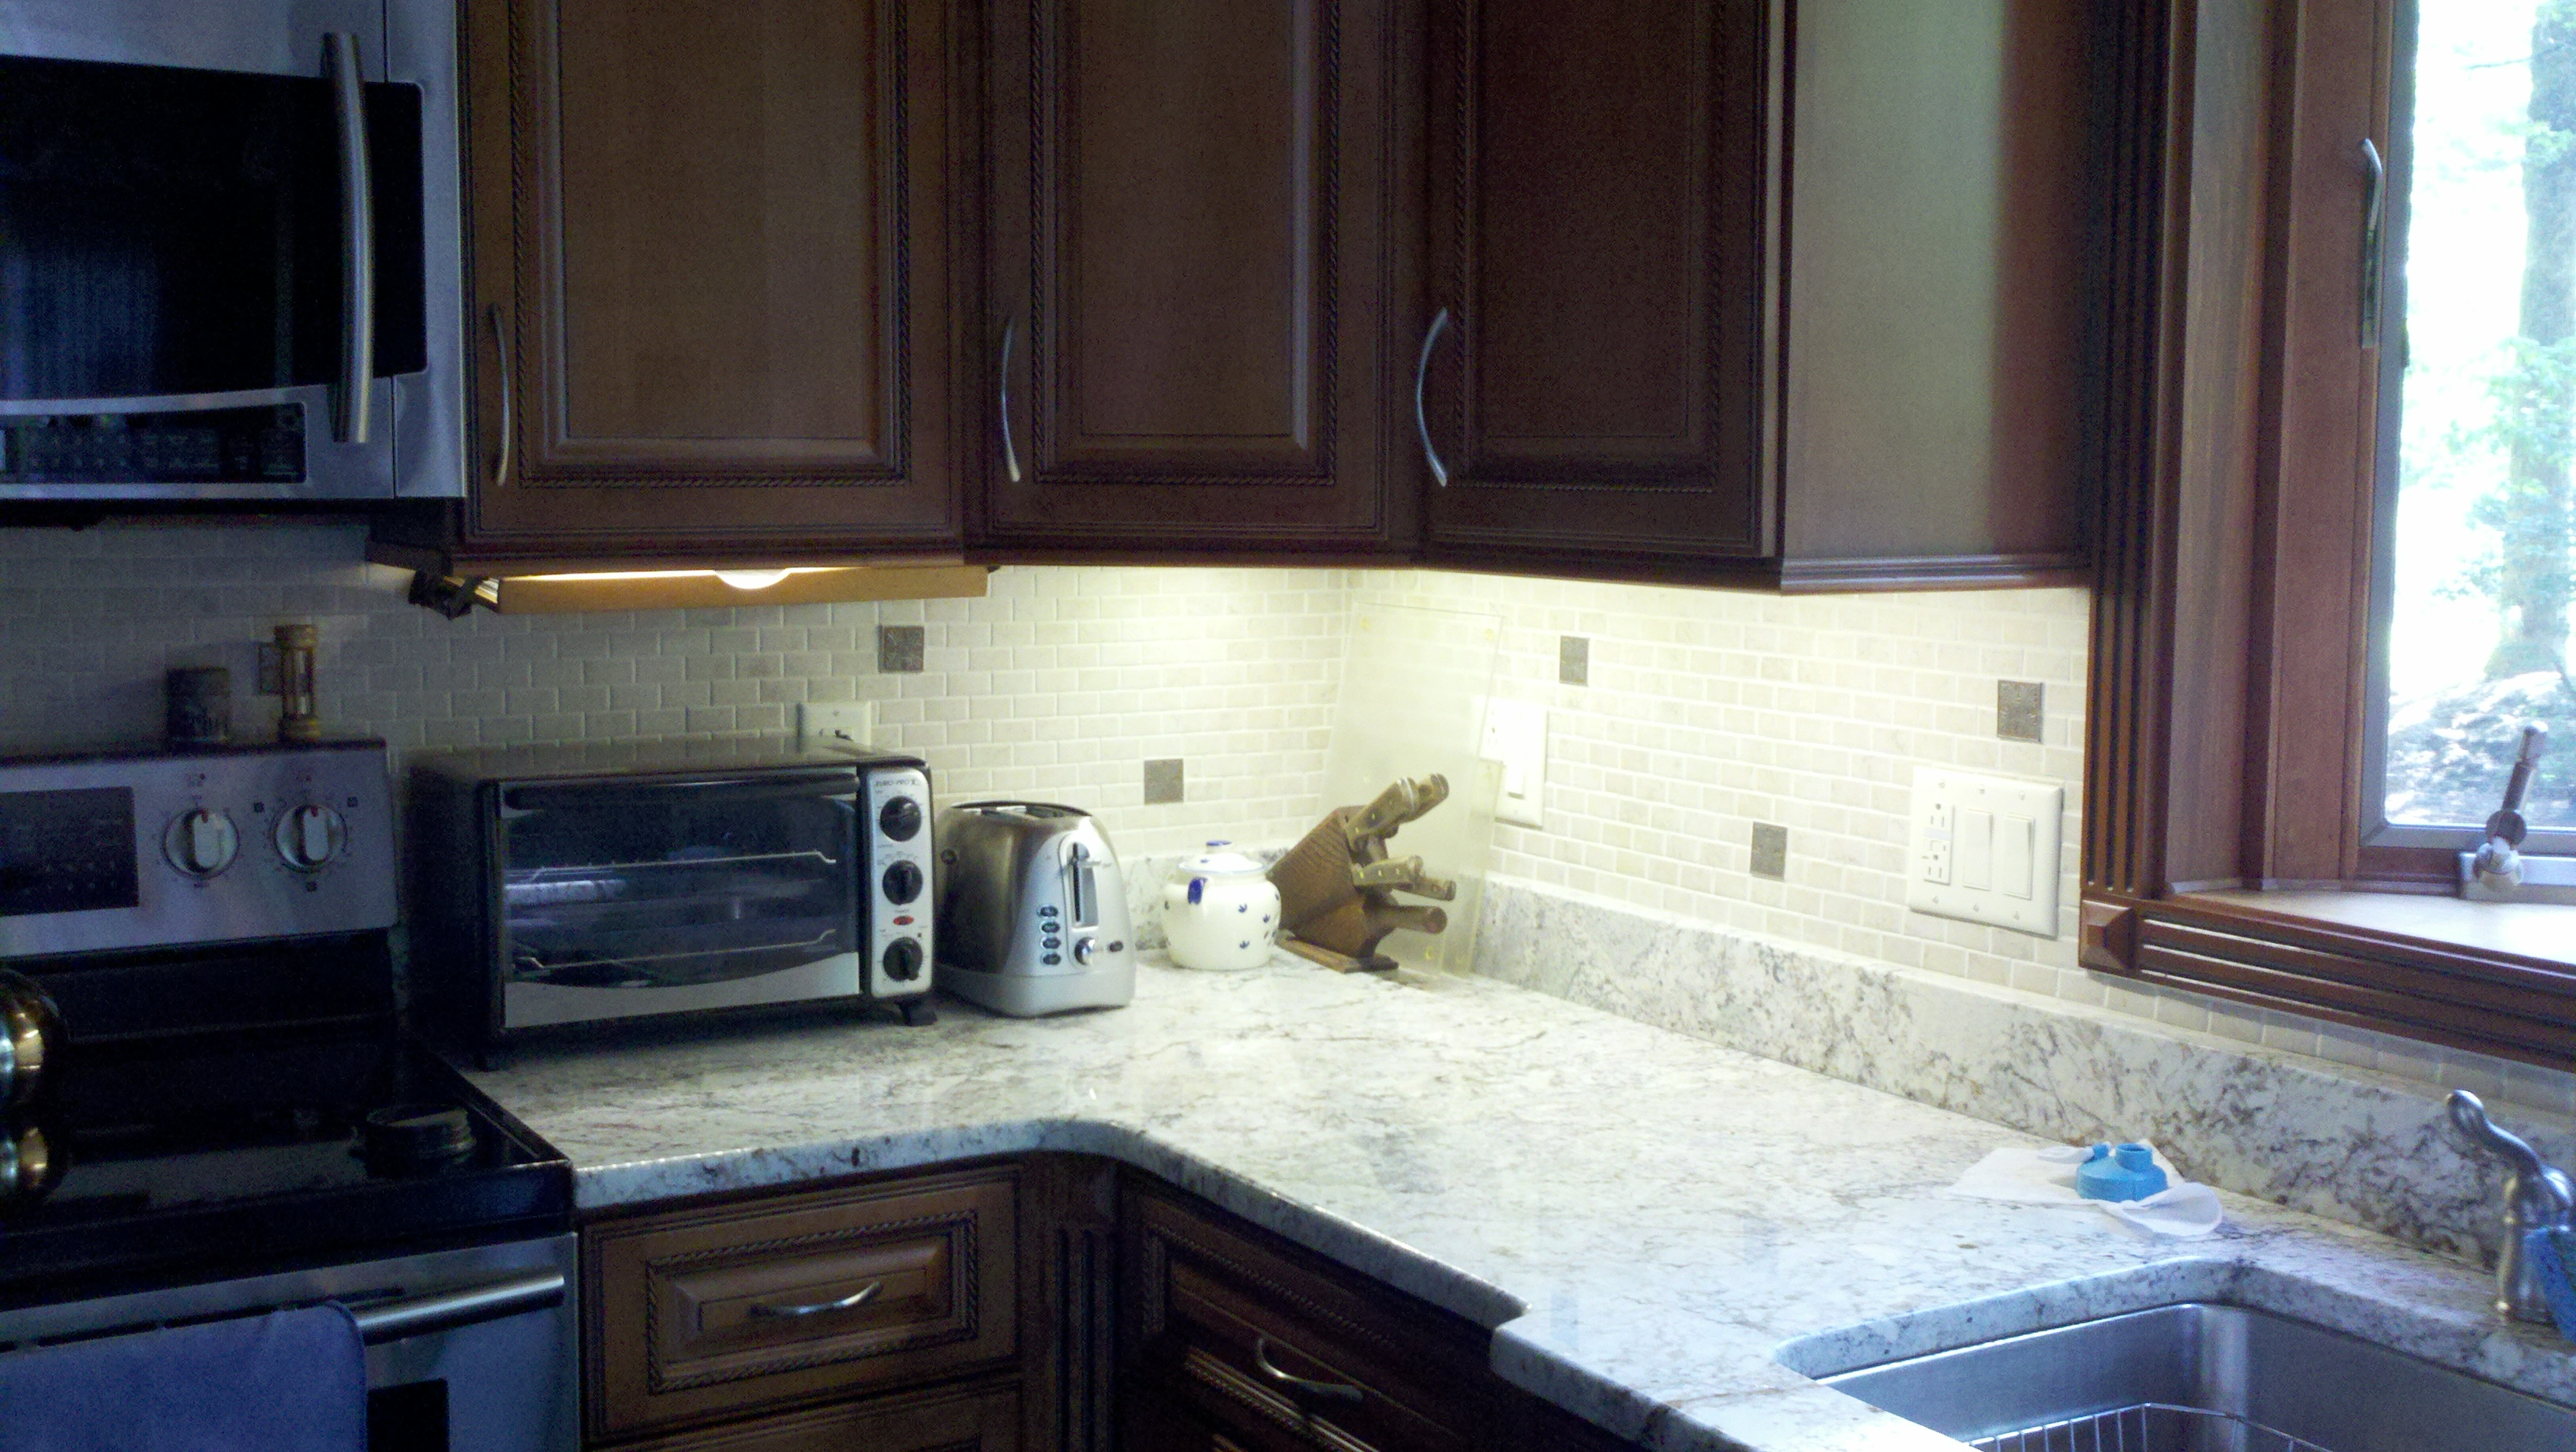 HowTo: Make Your Own Beautiful Under Cabinet LED Lights